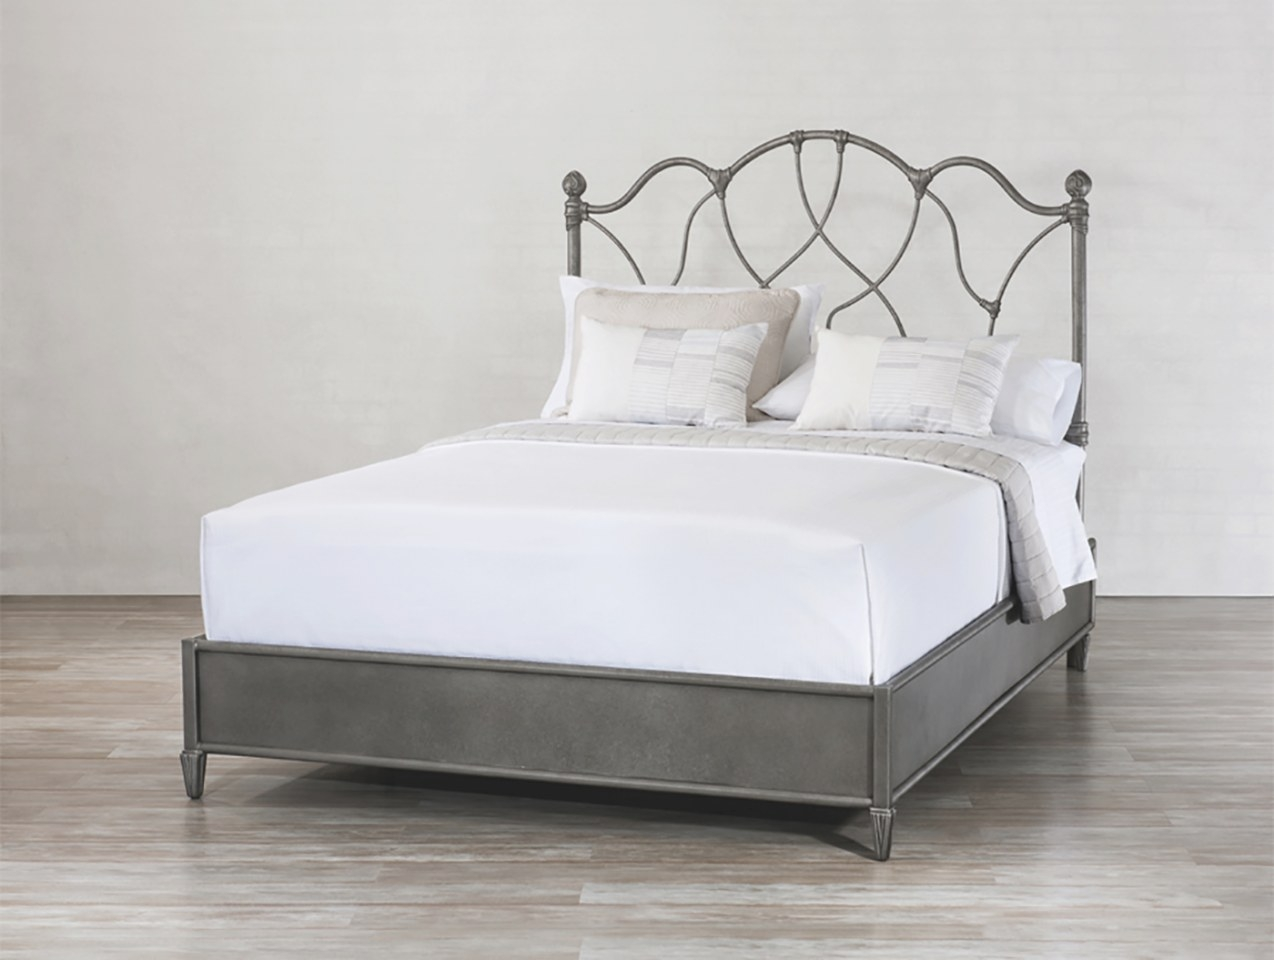 Morsley Surround Iron Bedwesley Allen | Sleepworks intended for Wesley Allen Iron Beds